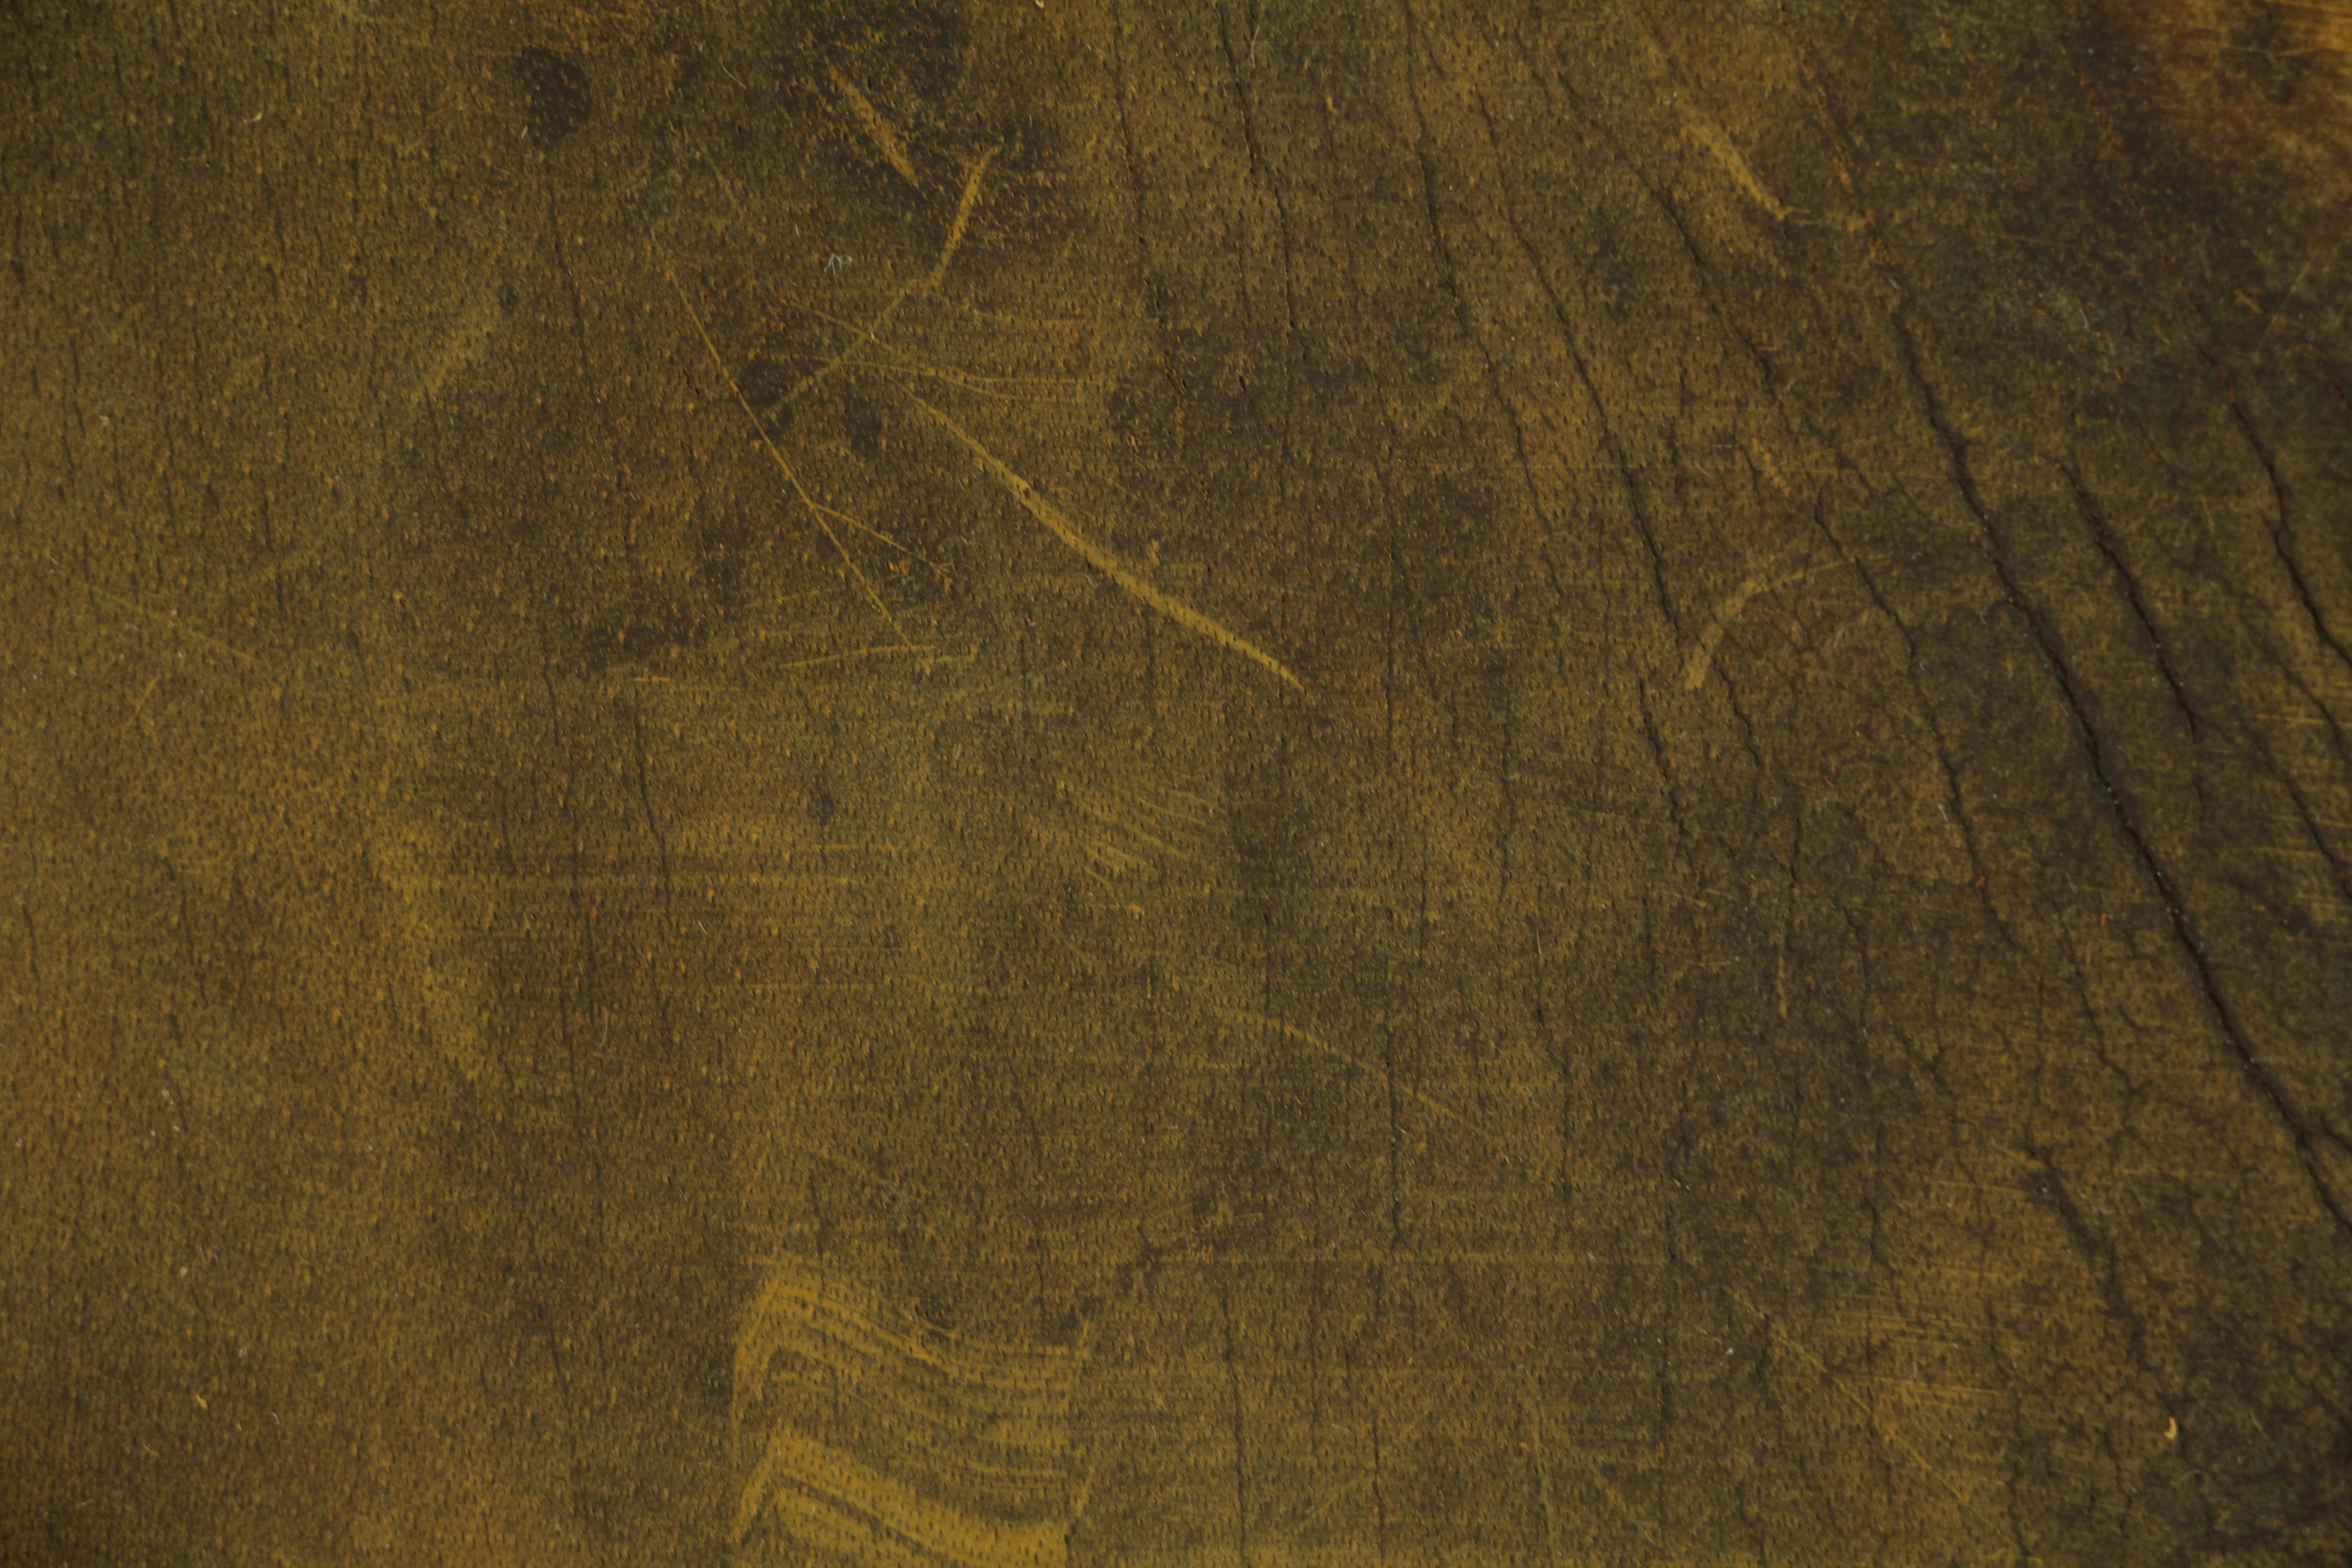 Most Inspiring Wallpaper High Resolution Wood - scratched-leather-texture-photo-high-resolution-wallpaper-fabric-material-5  You Should Have_194788.jpg